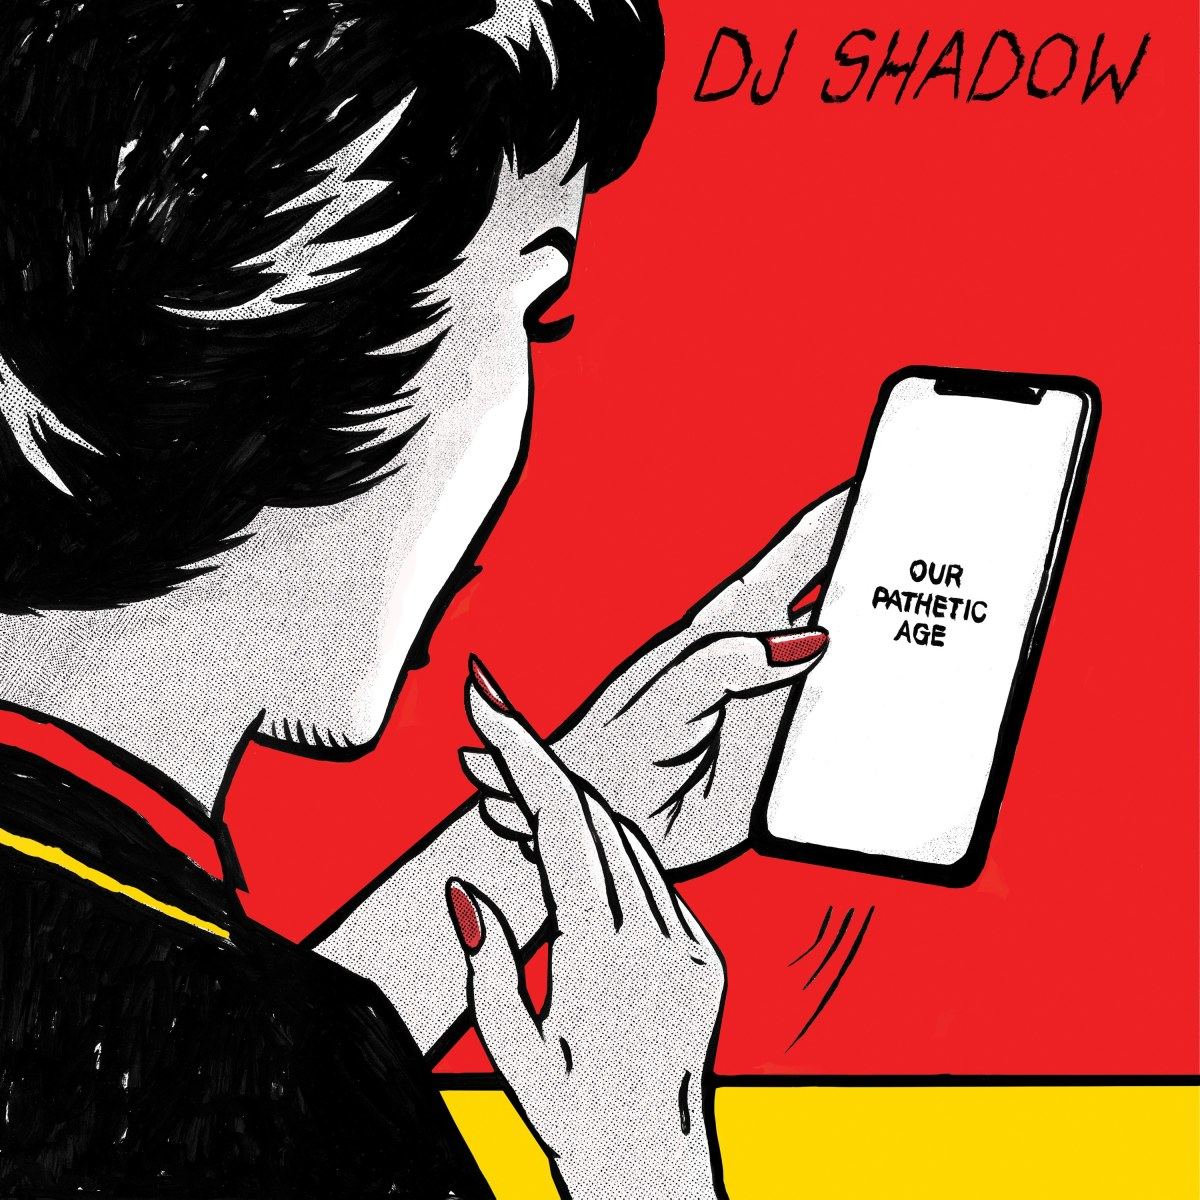 DJ Shadow Our Pathetic Age Cover Art